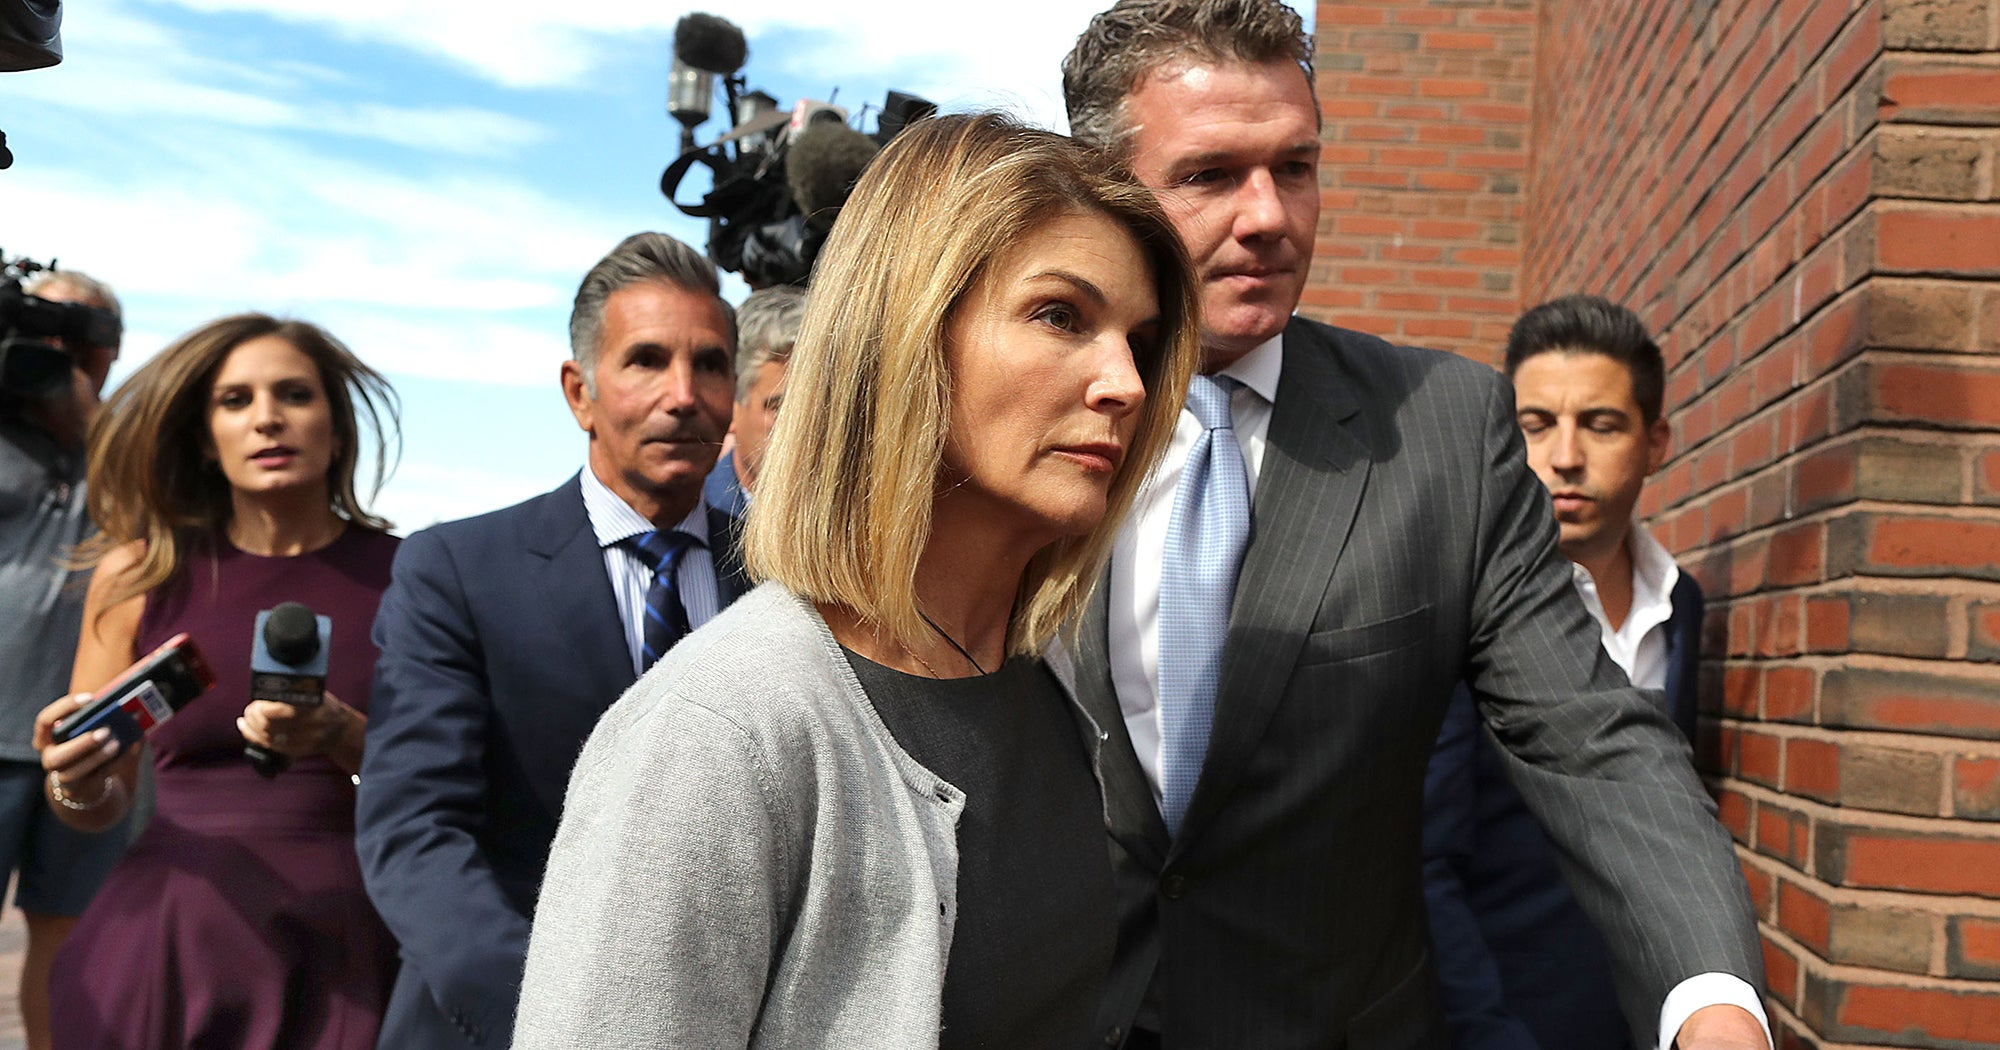 Lori Loughlin's Attorneys Just Made An Explosive Claim About The FBI's Treatment Of College Scam